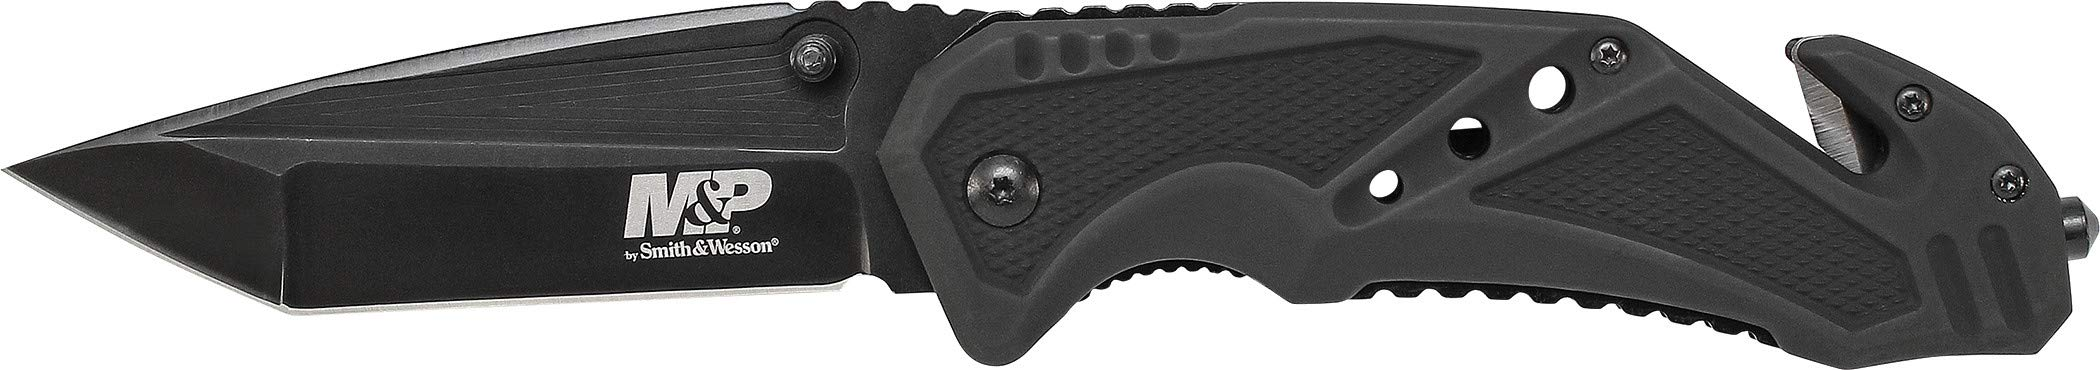 Smith & Wesson M&P SWMP11B 8.9in High Carbon S.S. Folding Knife with 3.8in Tanto Point Blade and Aluminum Handle for Outdoor, Tactical, Survival and EDC by Smith & Wesson